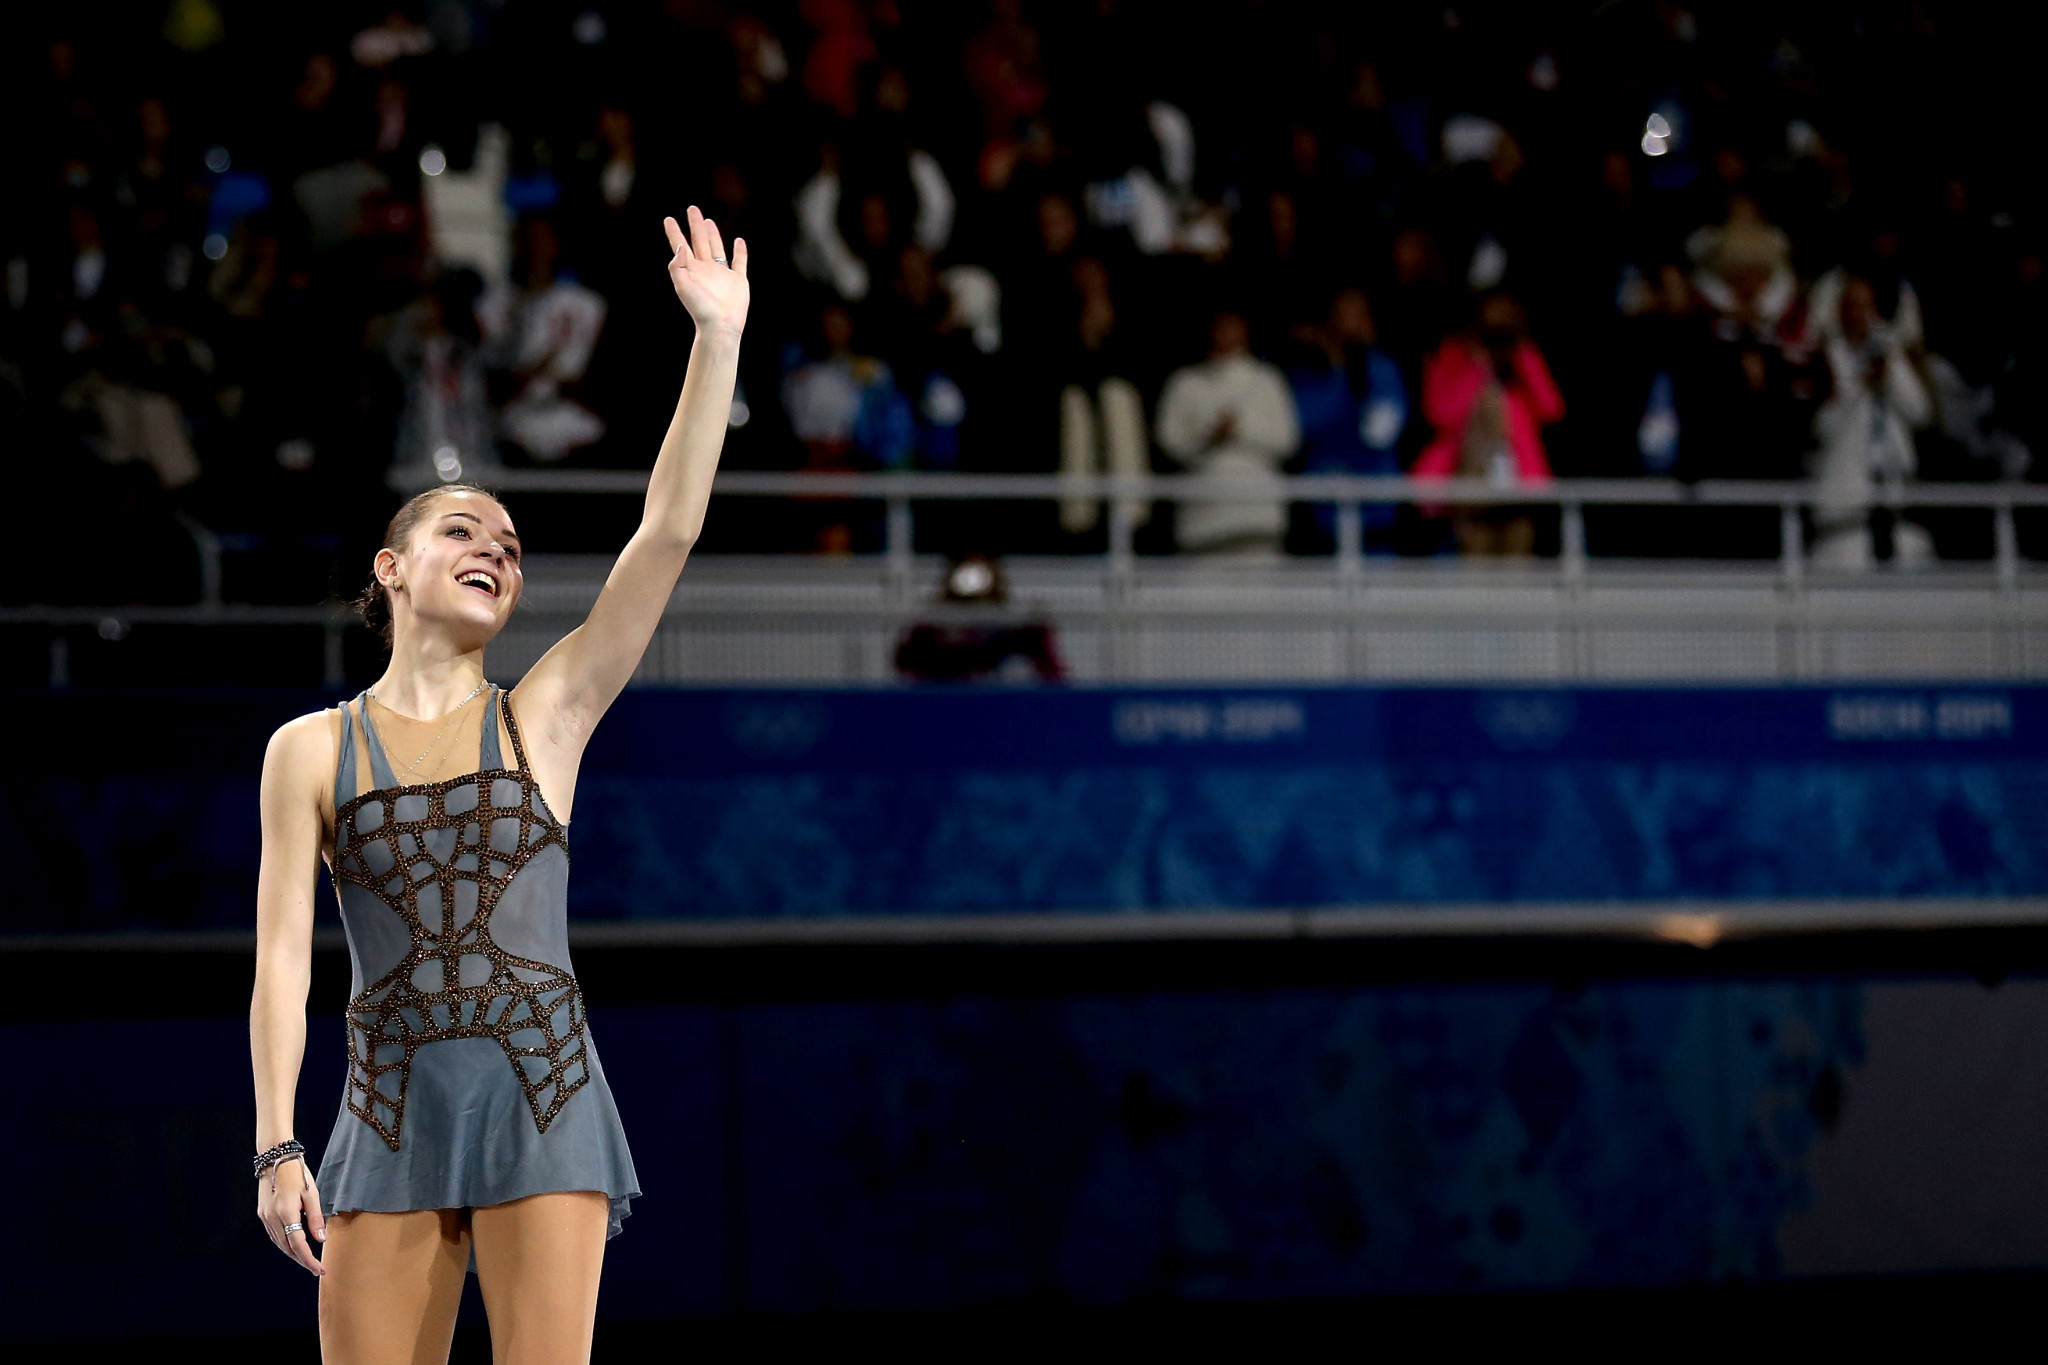 Sochi 2014 champion Sotnikova launches figure skating school